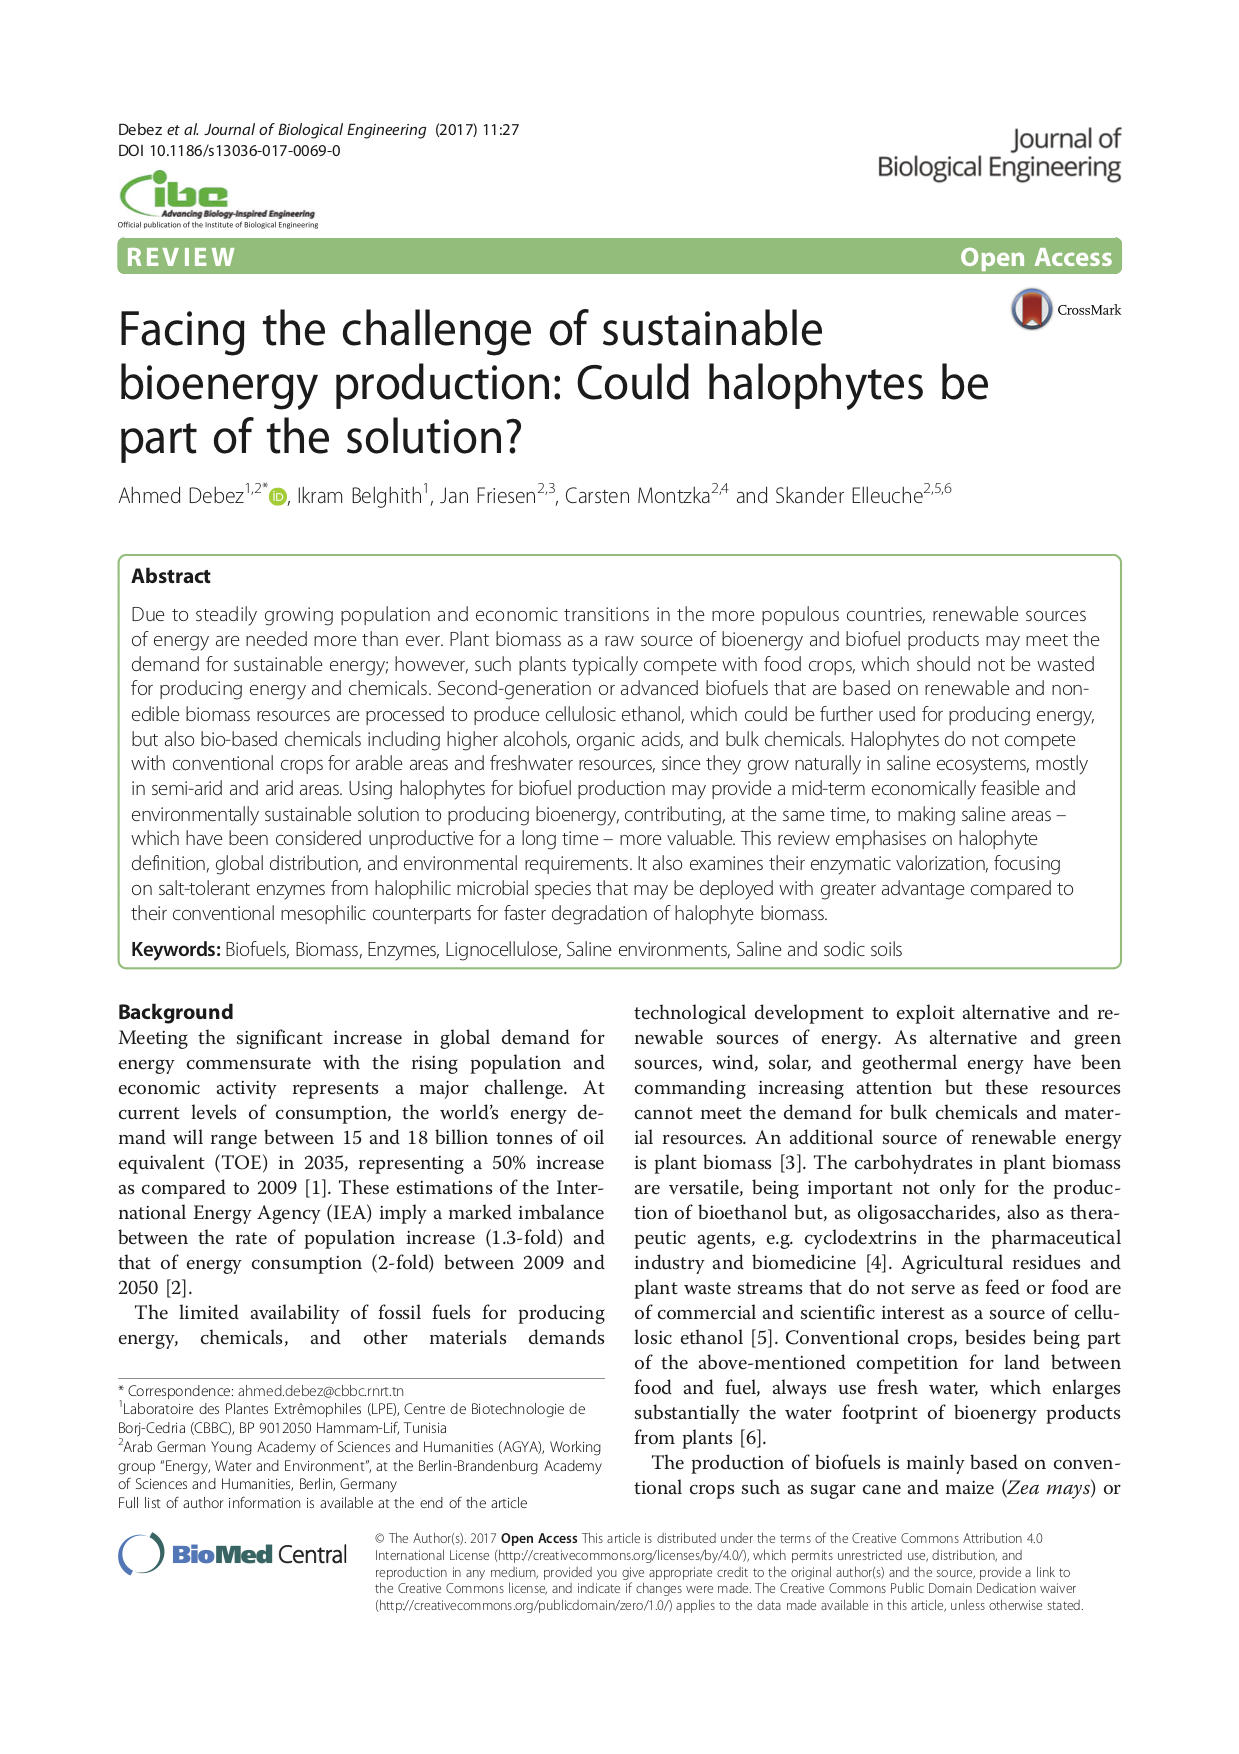 Wissenschaftlicher Artikel - Facing the challenge of sustainable bioenergy production: Could halophytes be part of the solution?